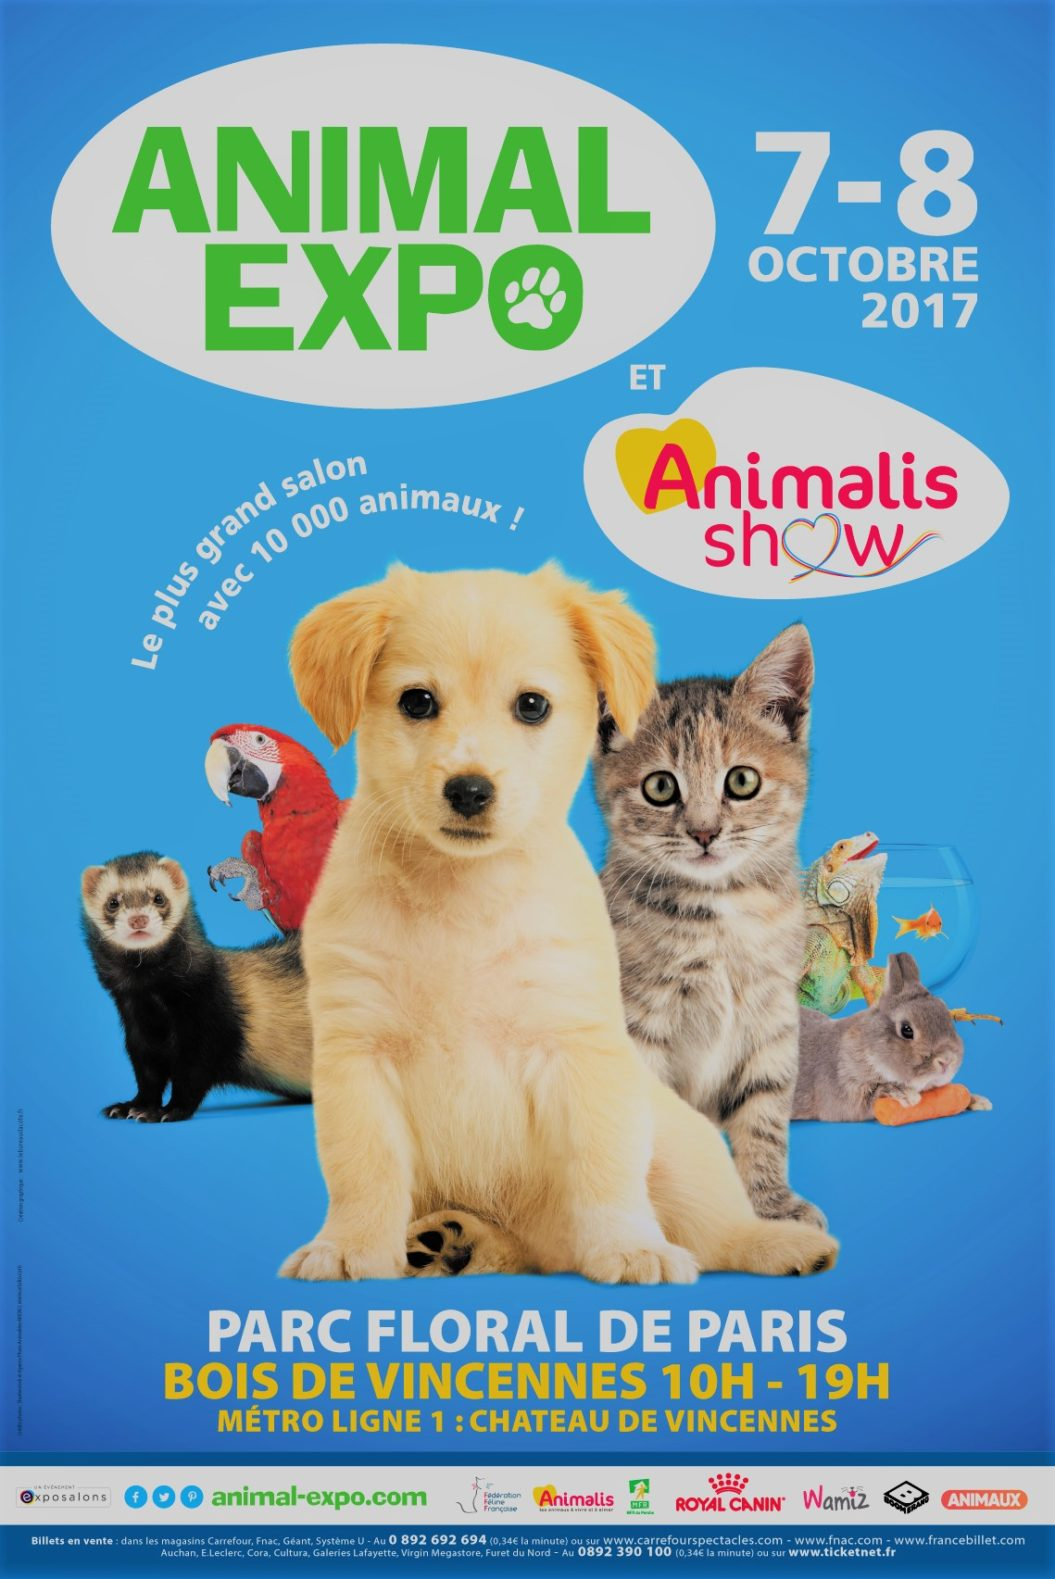 Salon Animal Expo Parc Floral de Paris Bois de Vincennes - 7 & 8 Octobre 2017